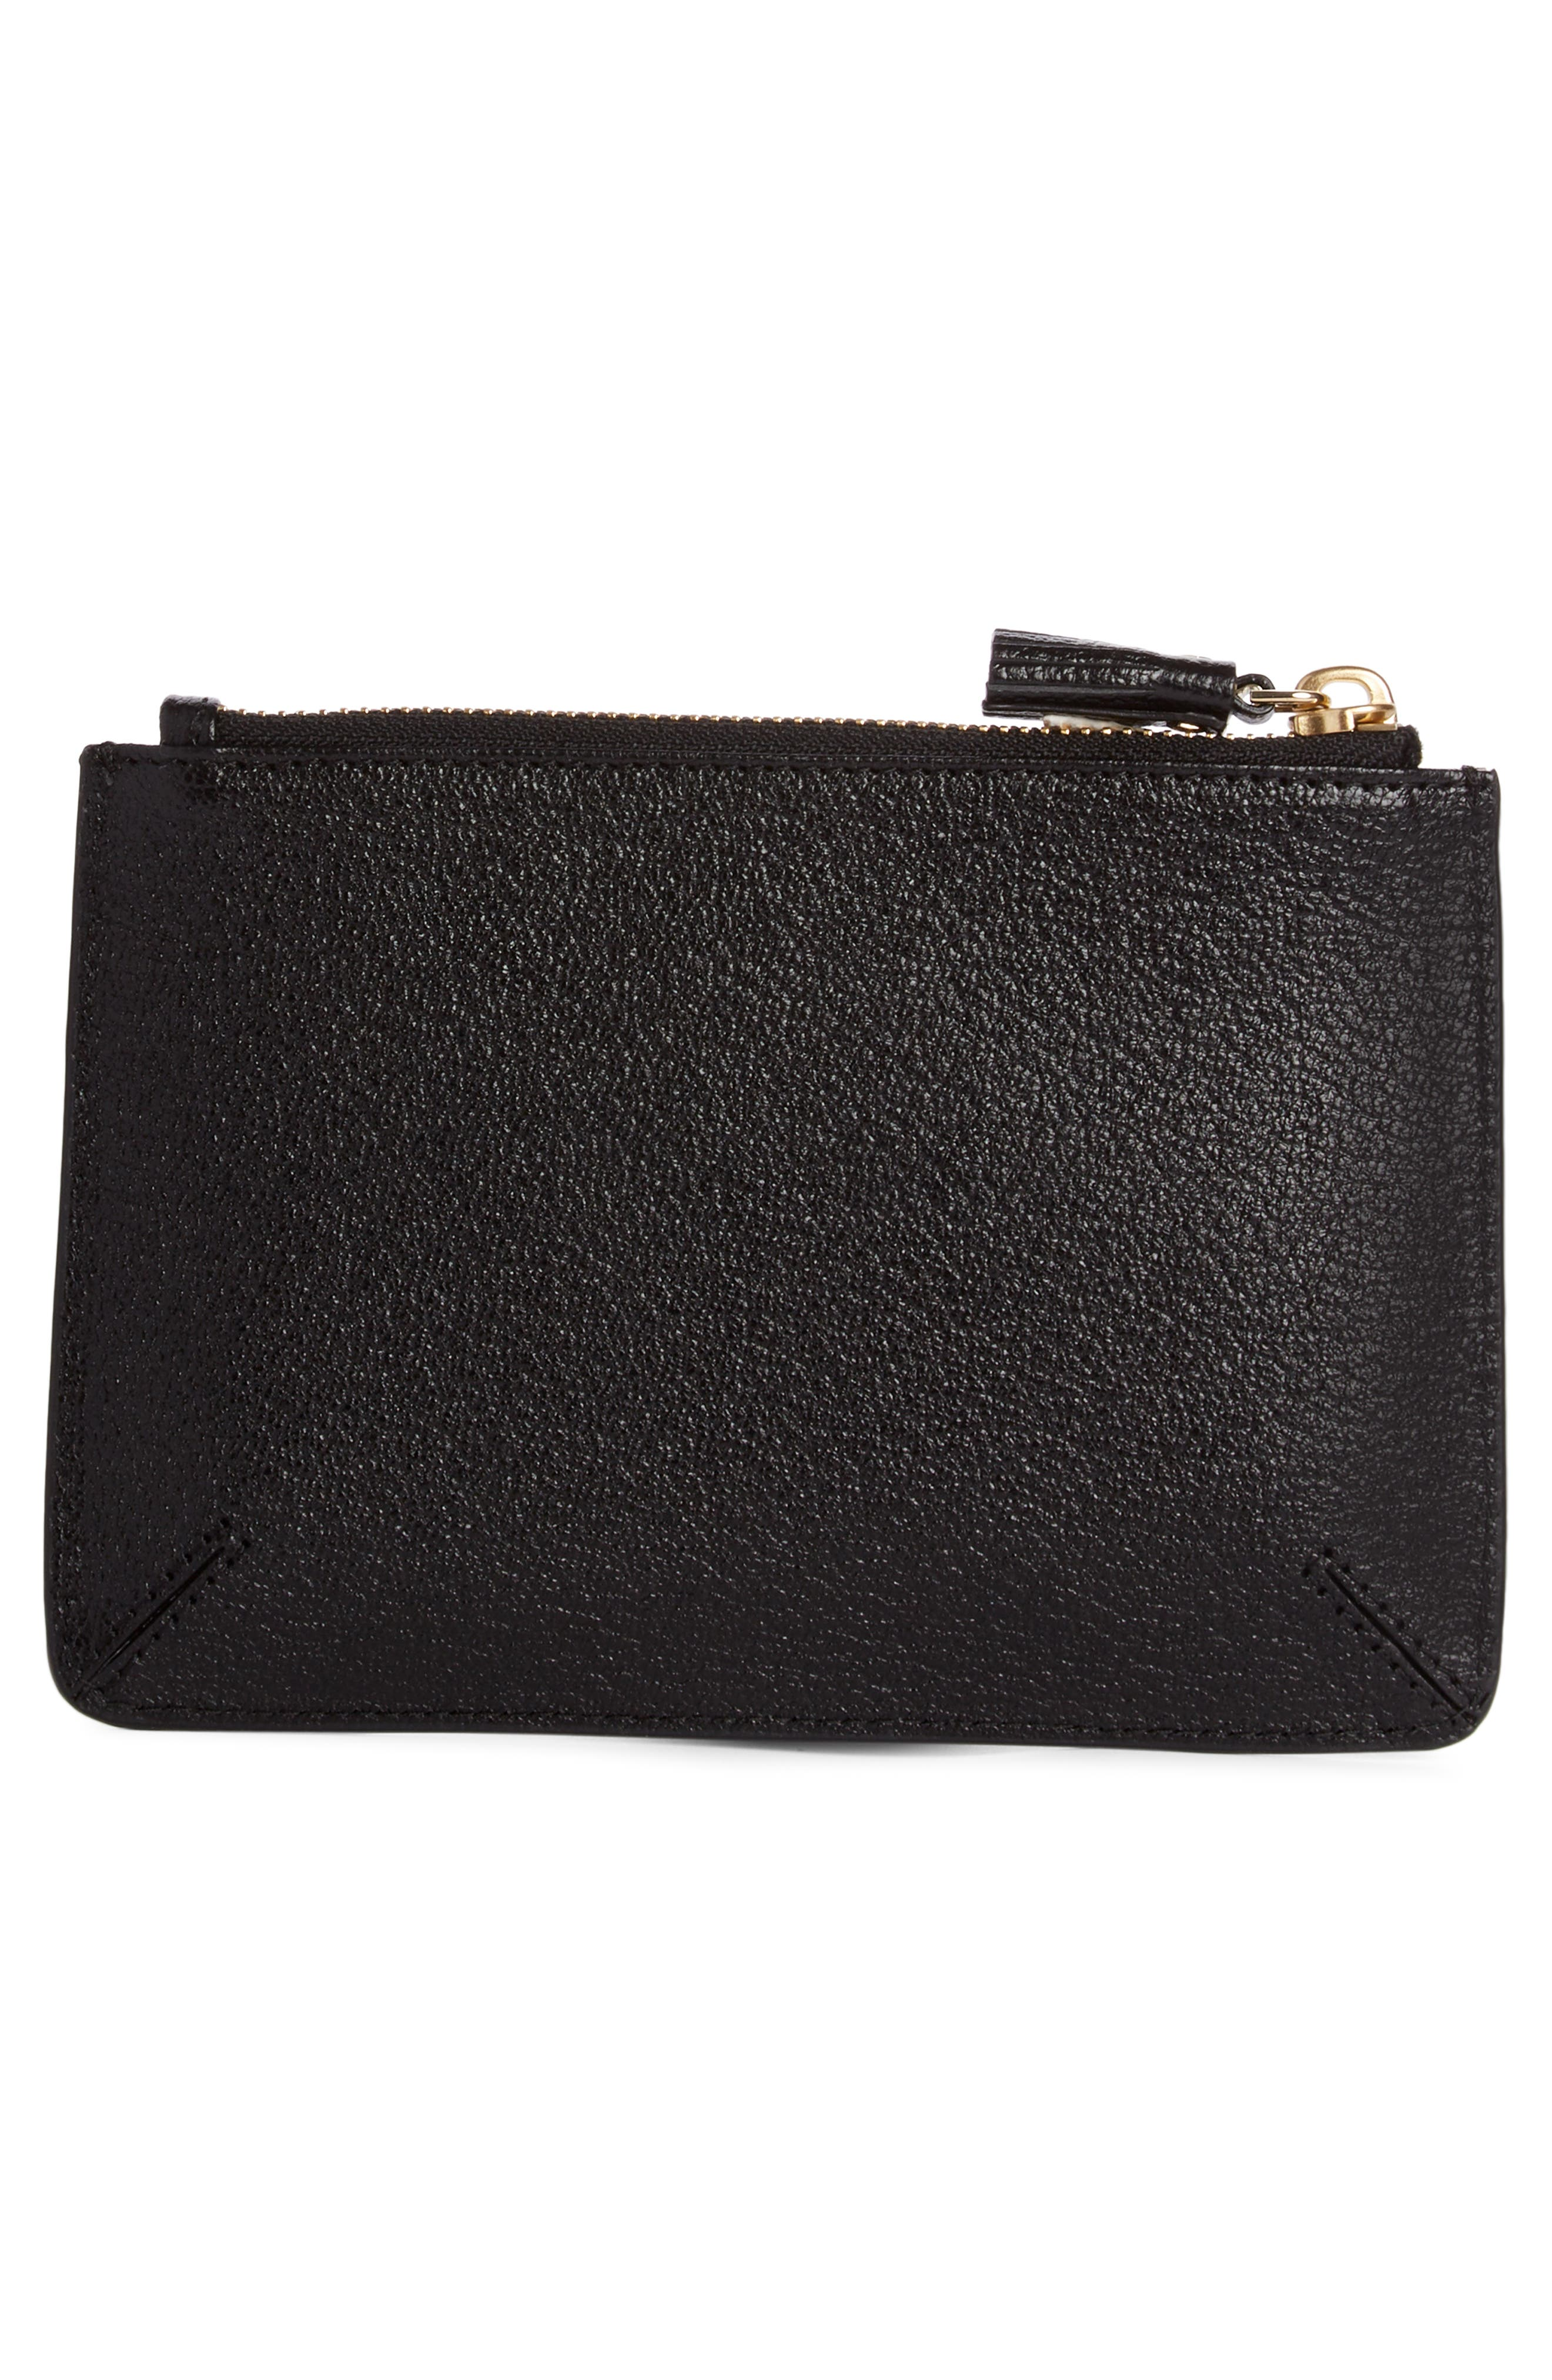 Eyes Leather Zip Pouch,                             Alternate thumbnail 2, color,                             BLACK/ LIGHT GREY